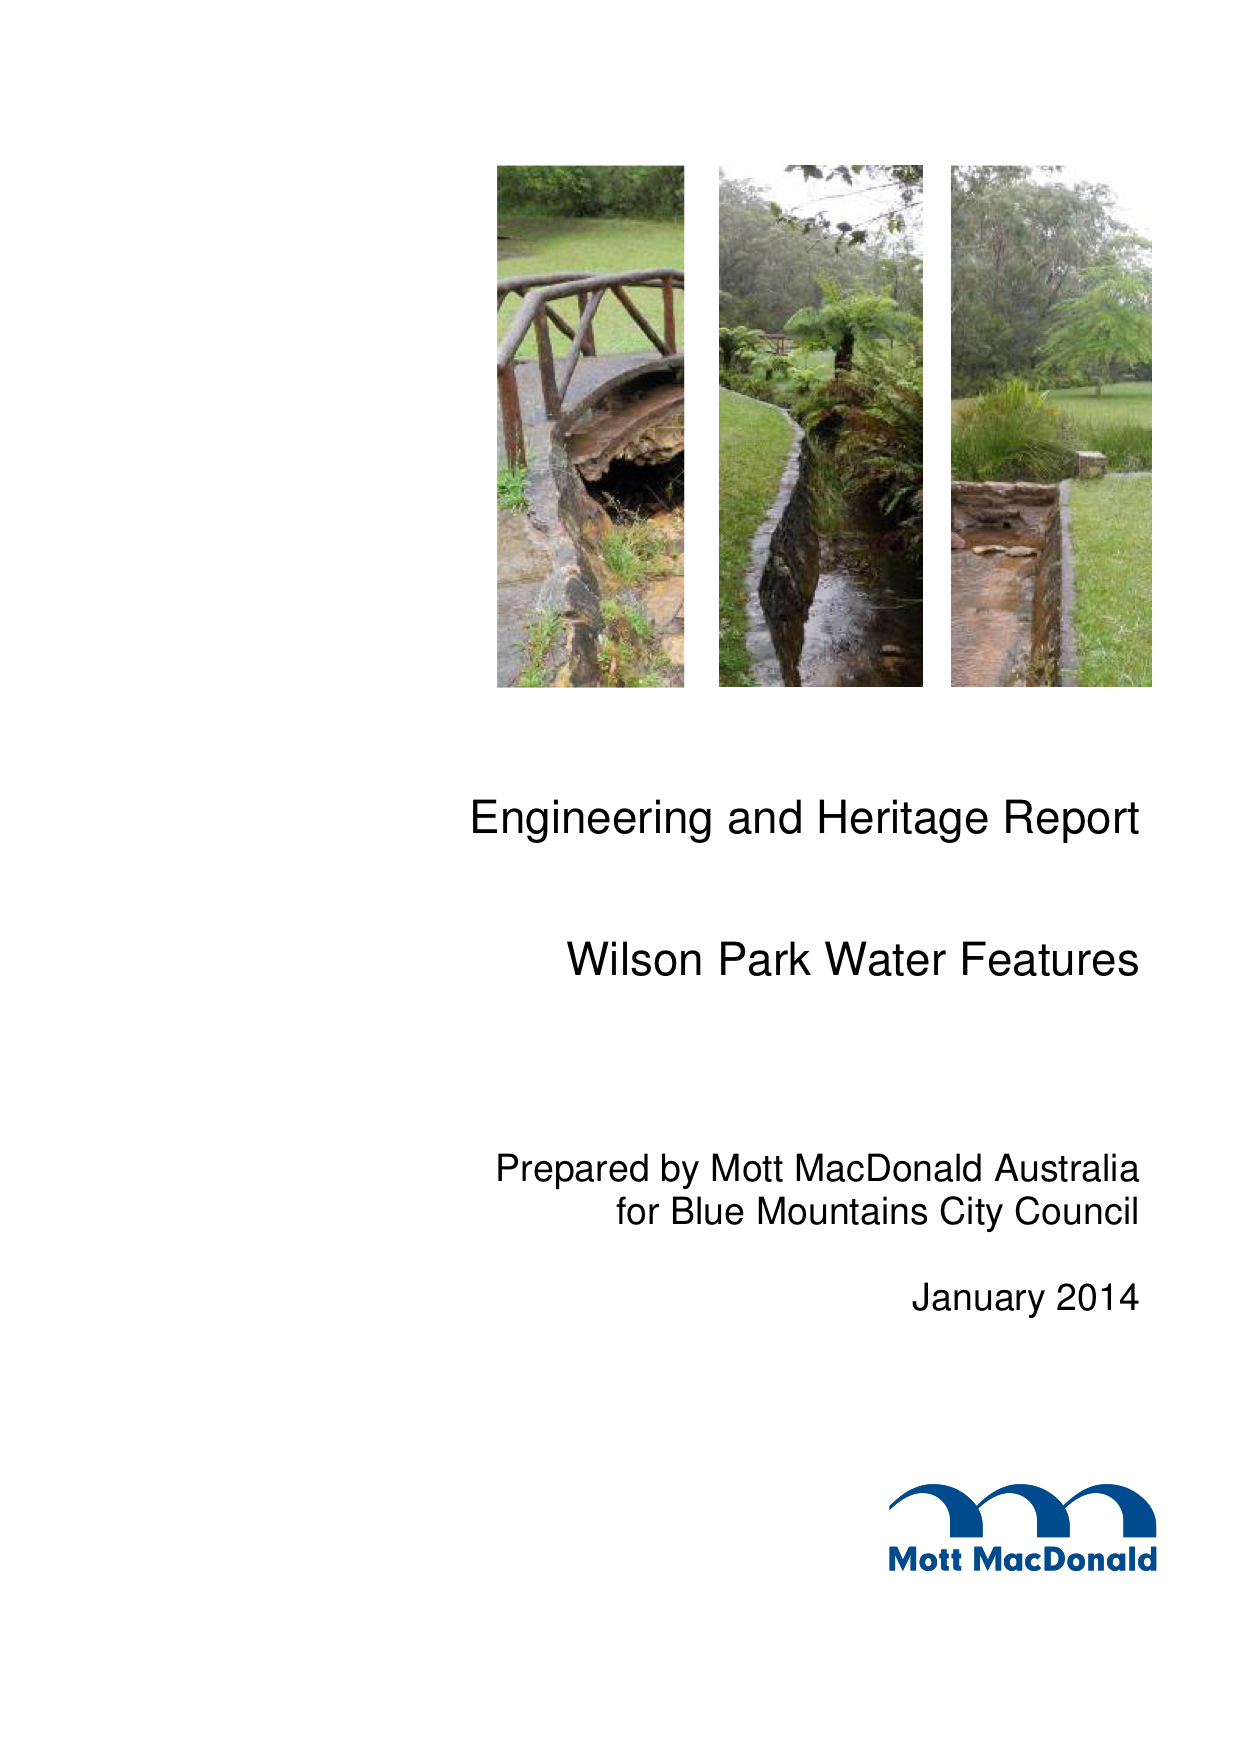 Engineering and Heritage Report, Wilson Park Water Features